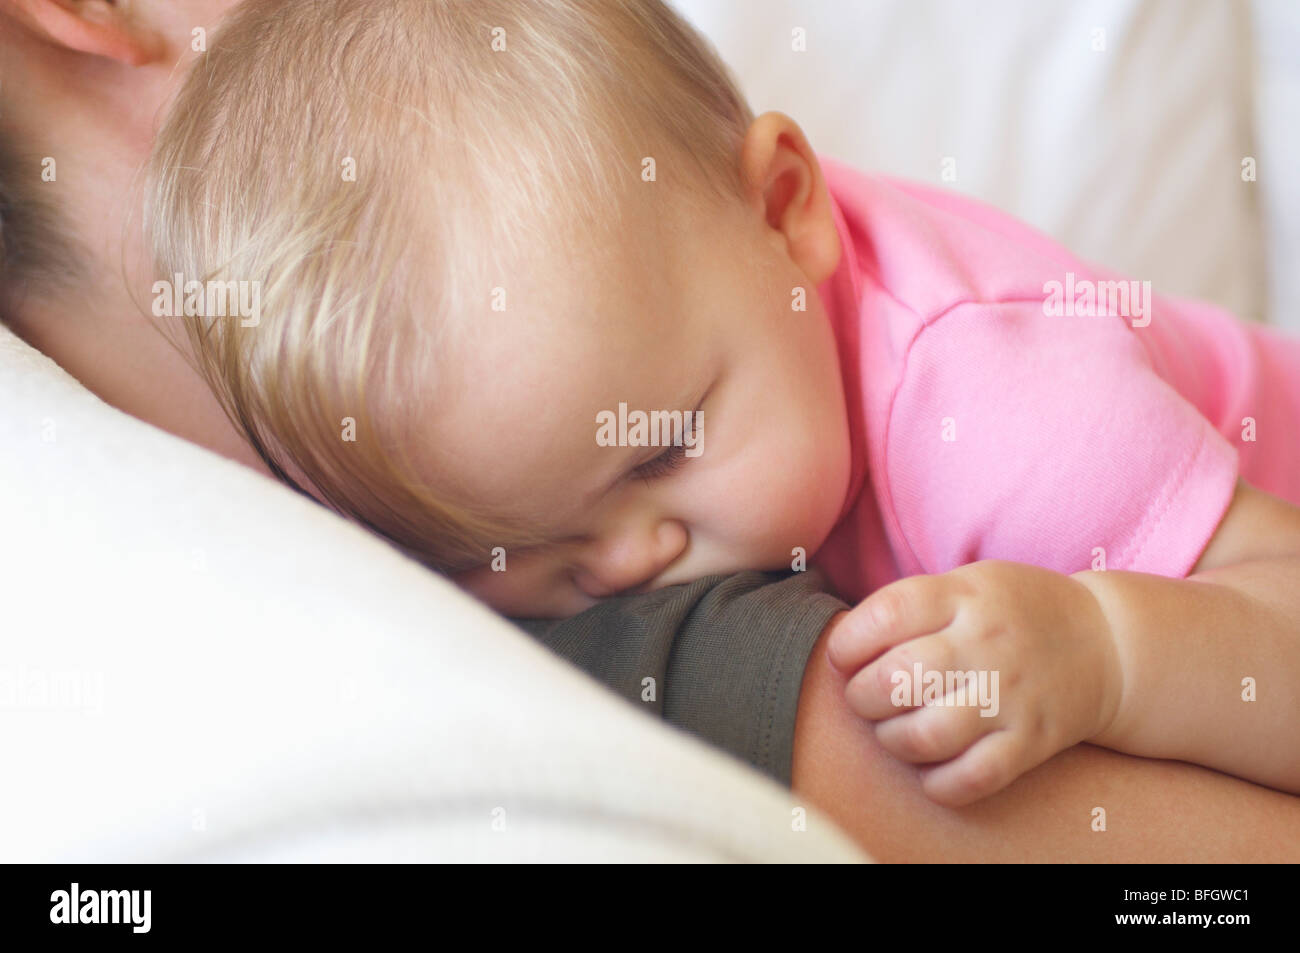 Baby sleeping on mother's shoulder, close up - Stock Image